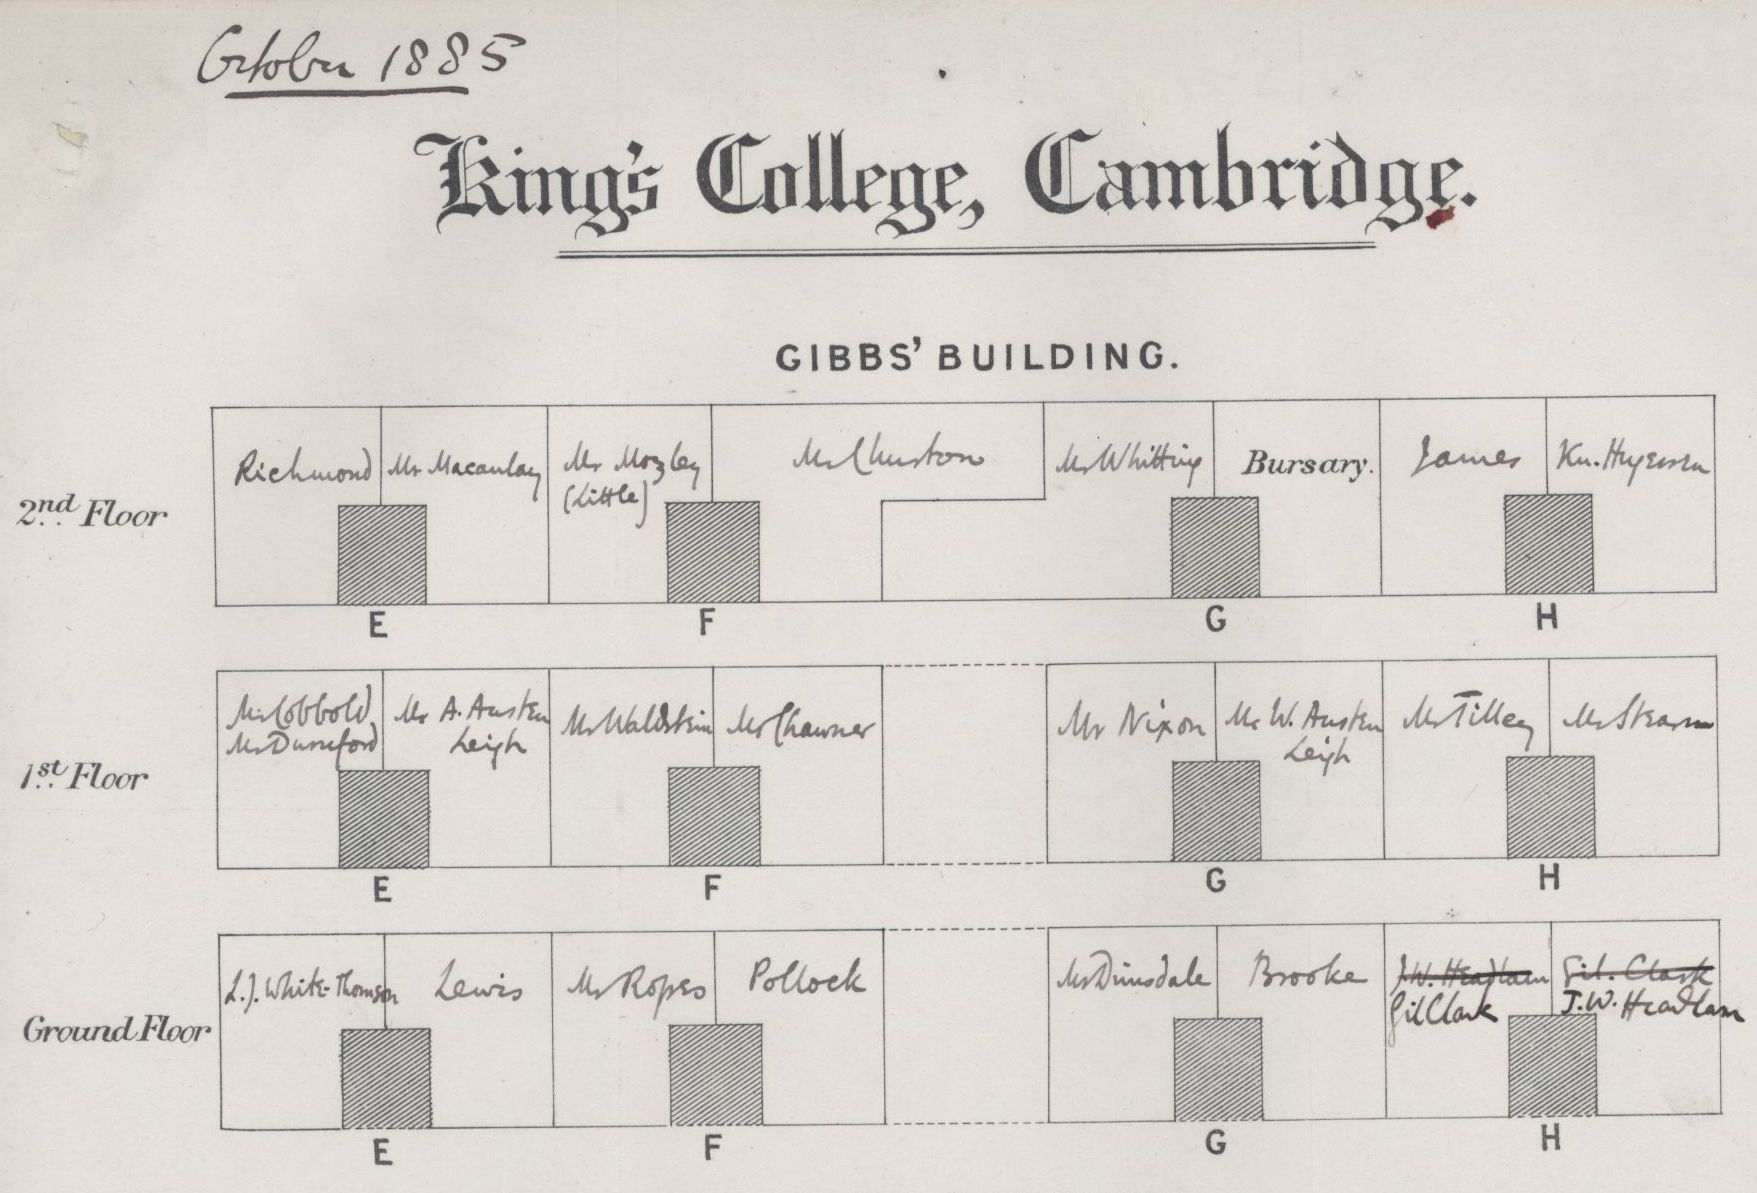 Floor plan, October 1885, showing the Bursary, M.R. James and Augustus Austen Leigh. [KCAC/1/3/2/1]